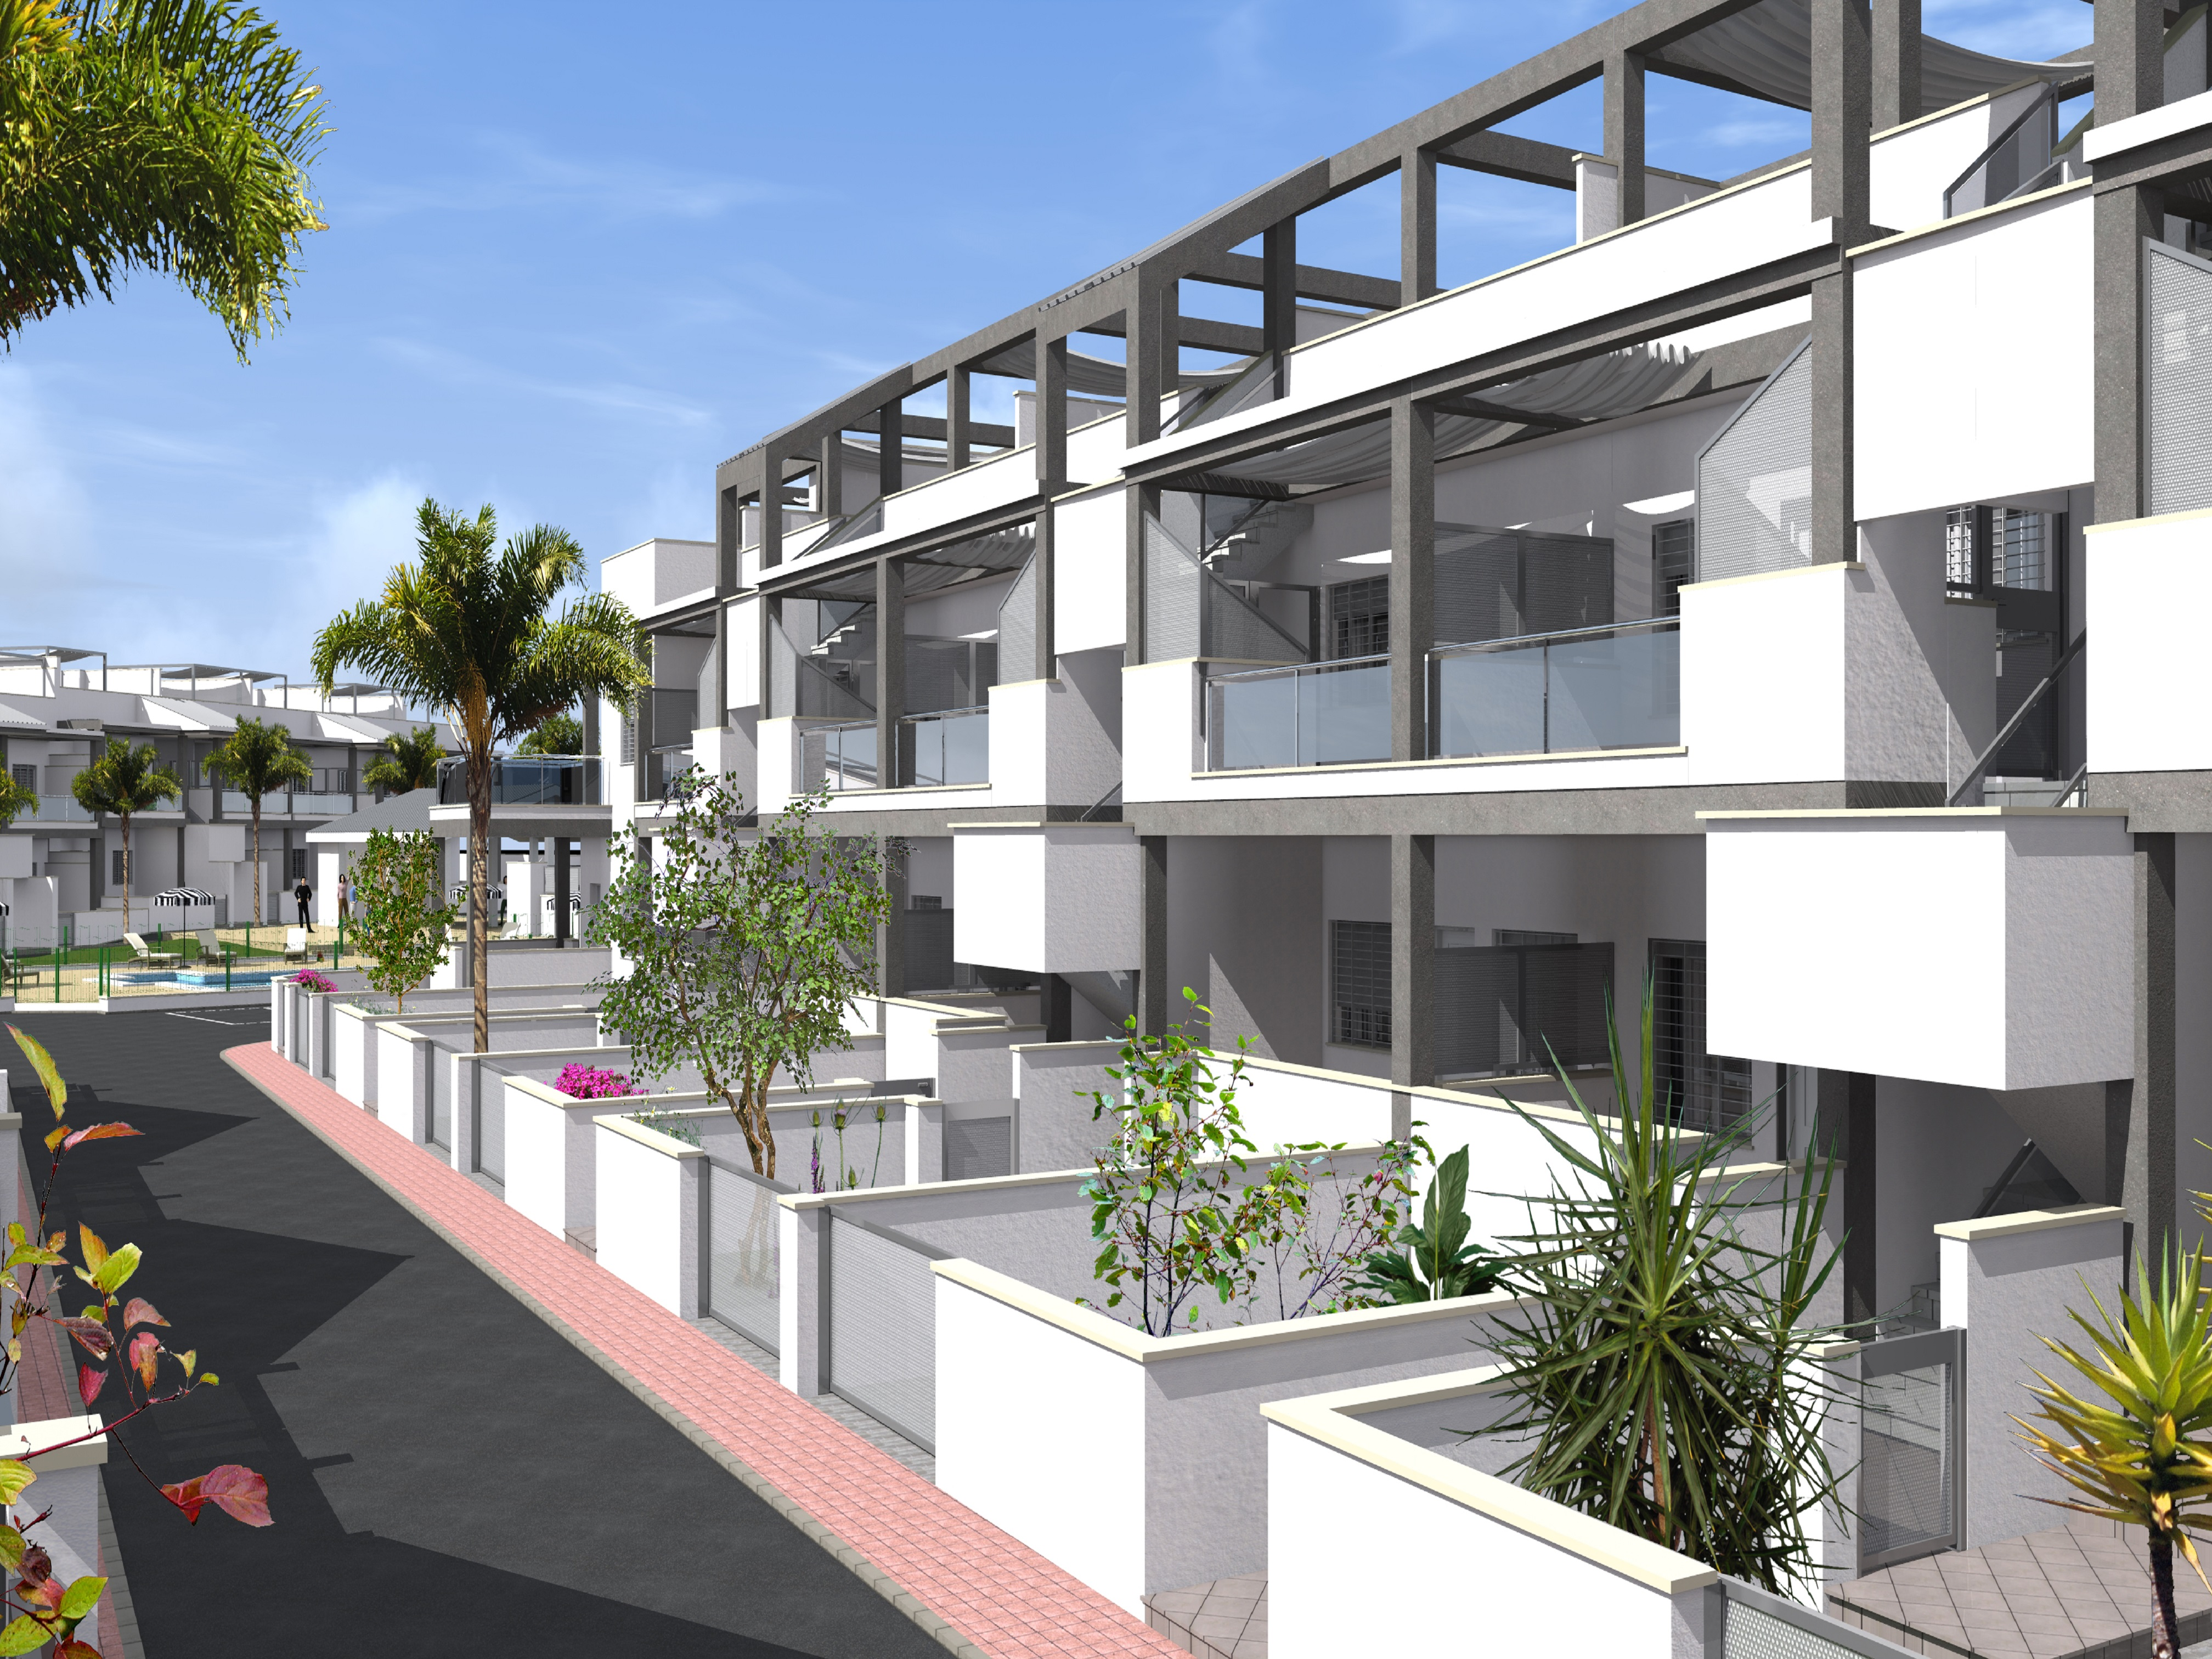 Very last new build holiday homes for sale in Playa Flamenca, La Florida, Orihuela Costa.